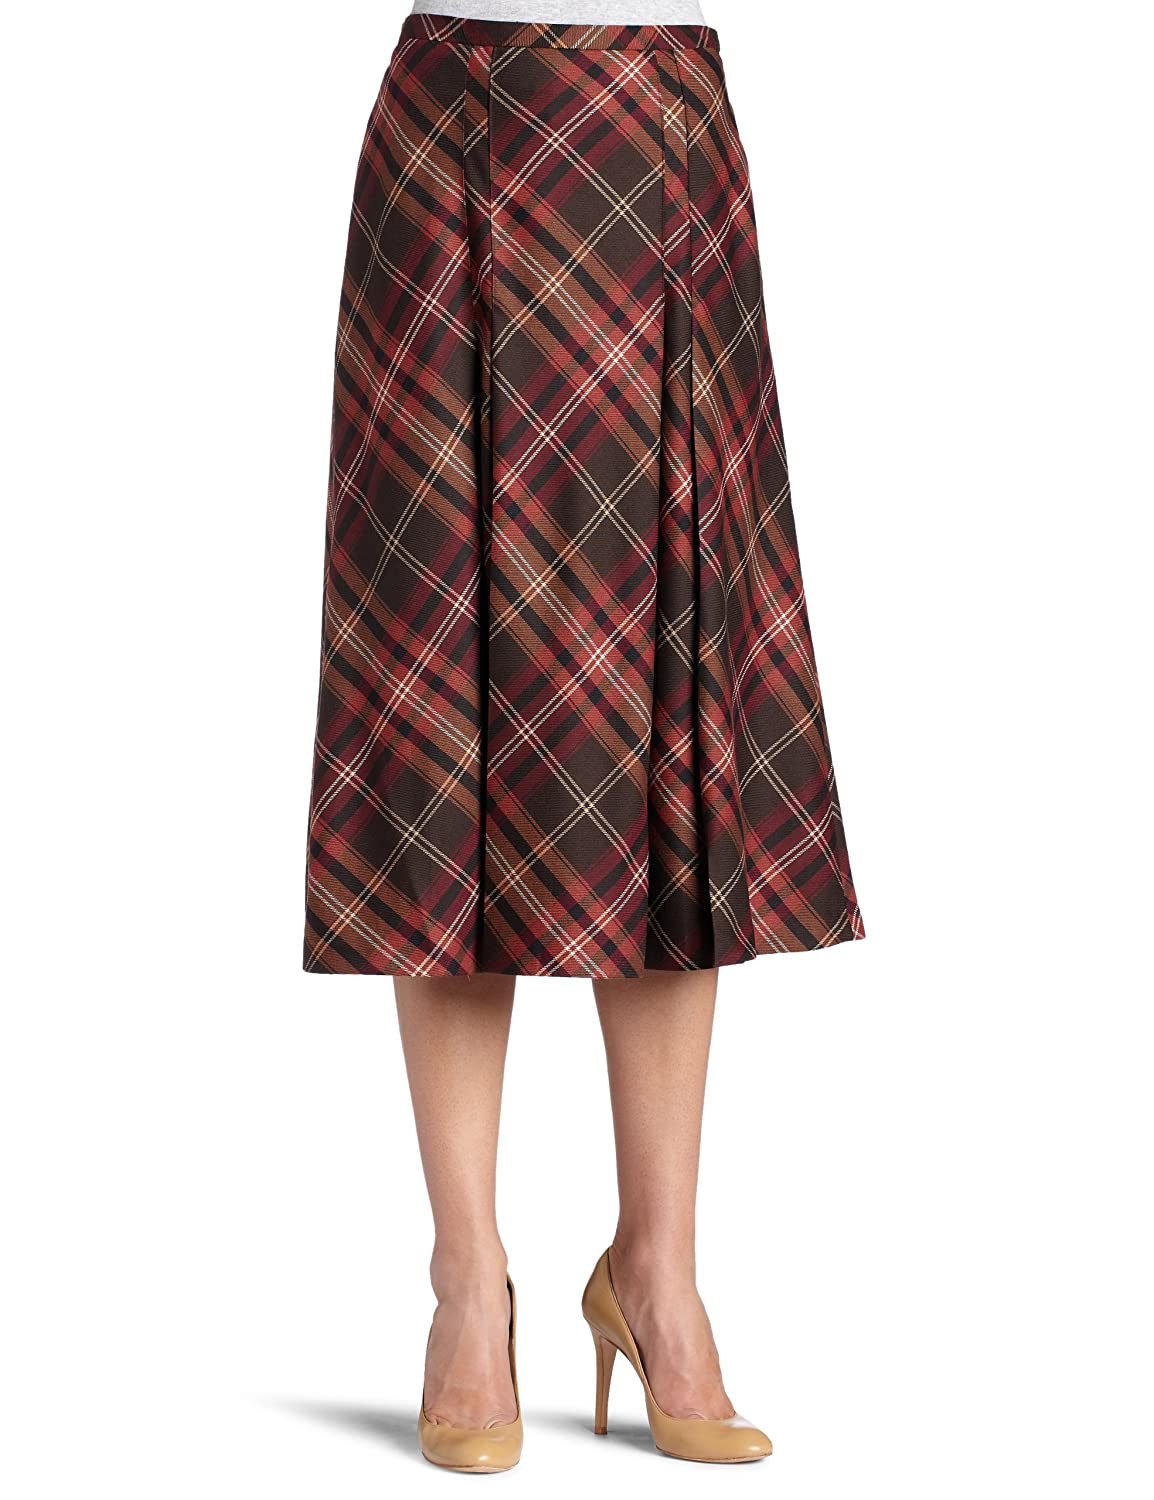 Pendleton Women's Bias Border Skirt TG624-10748